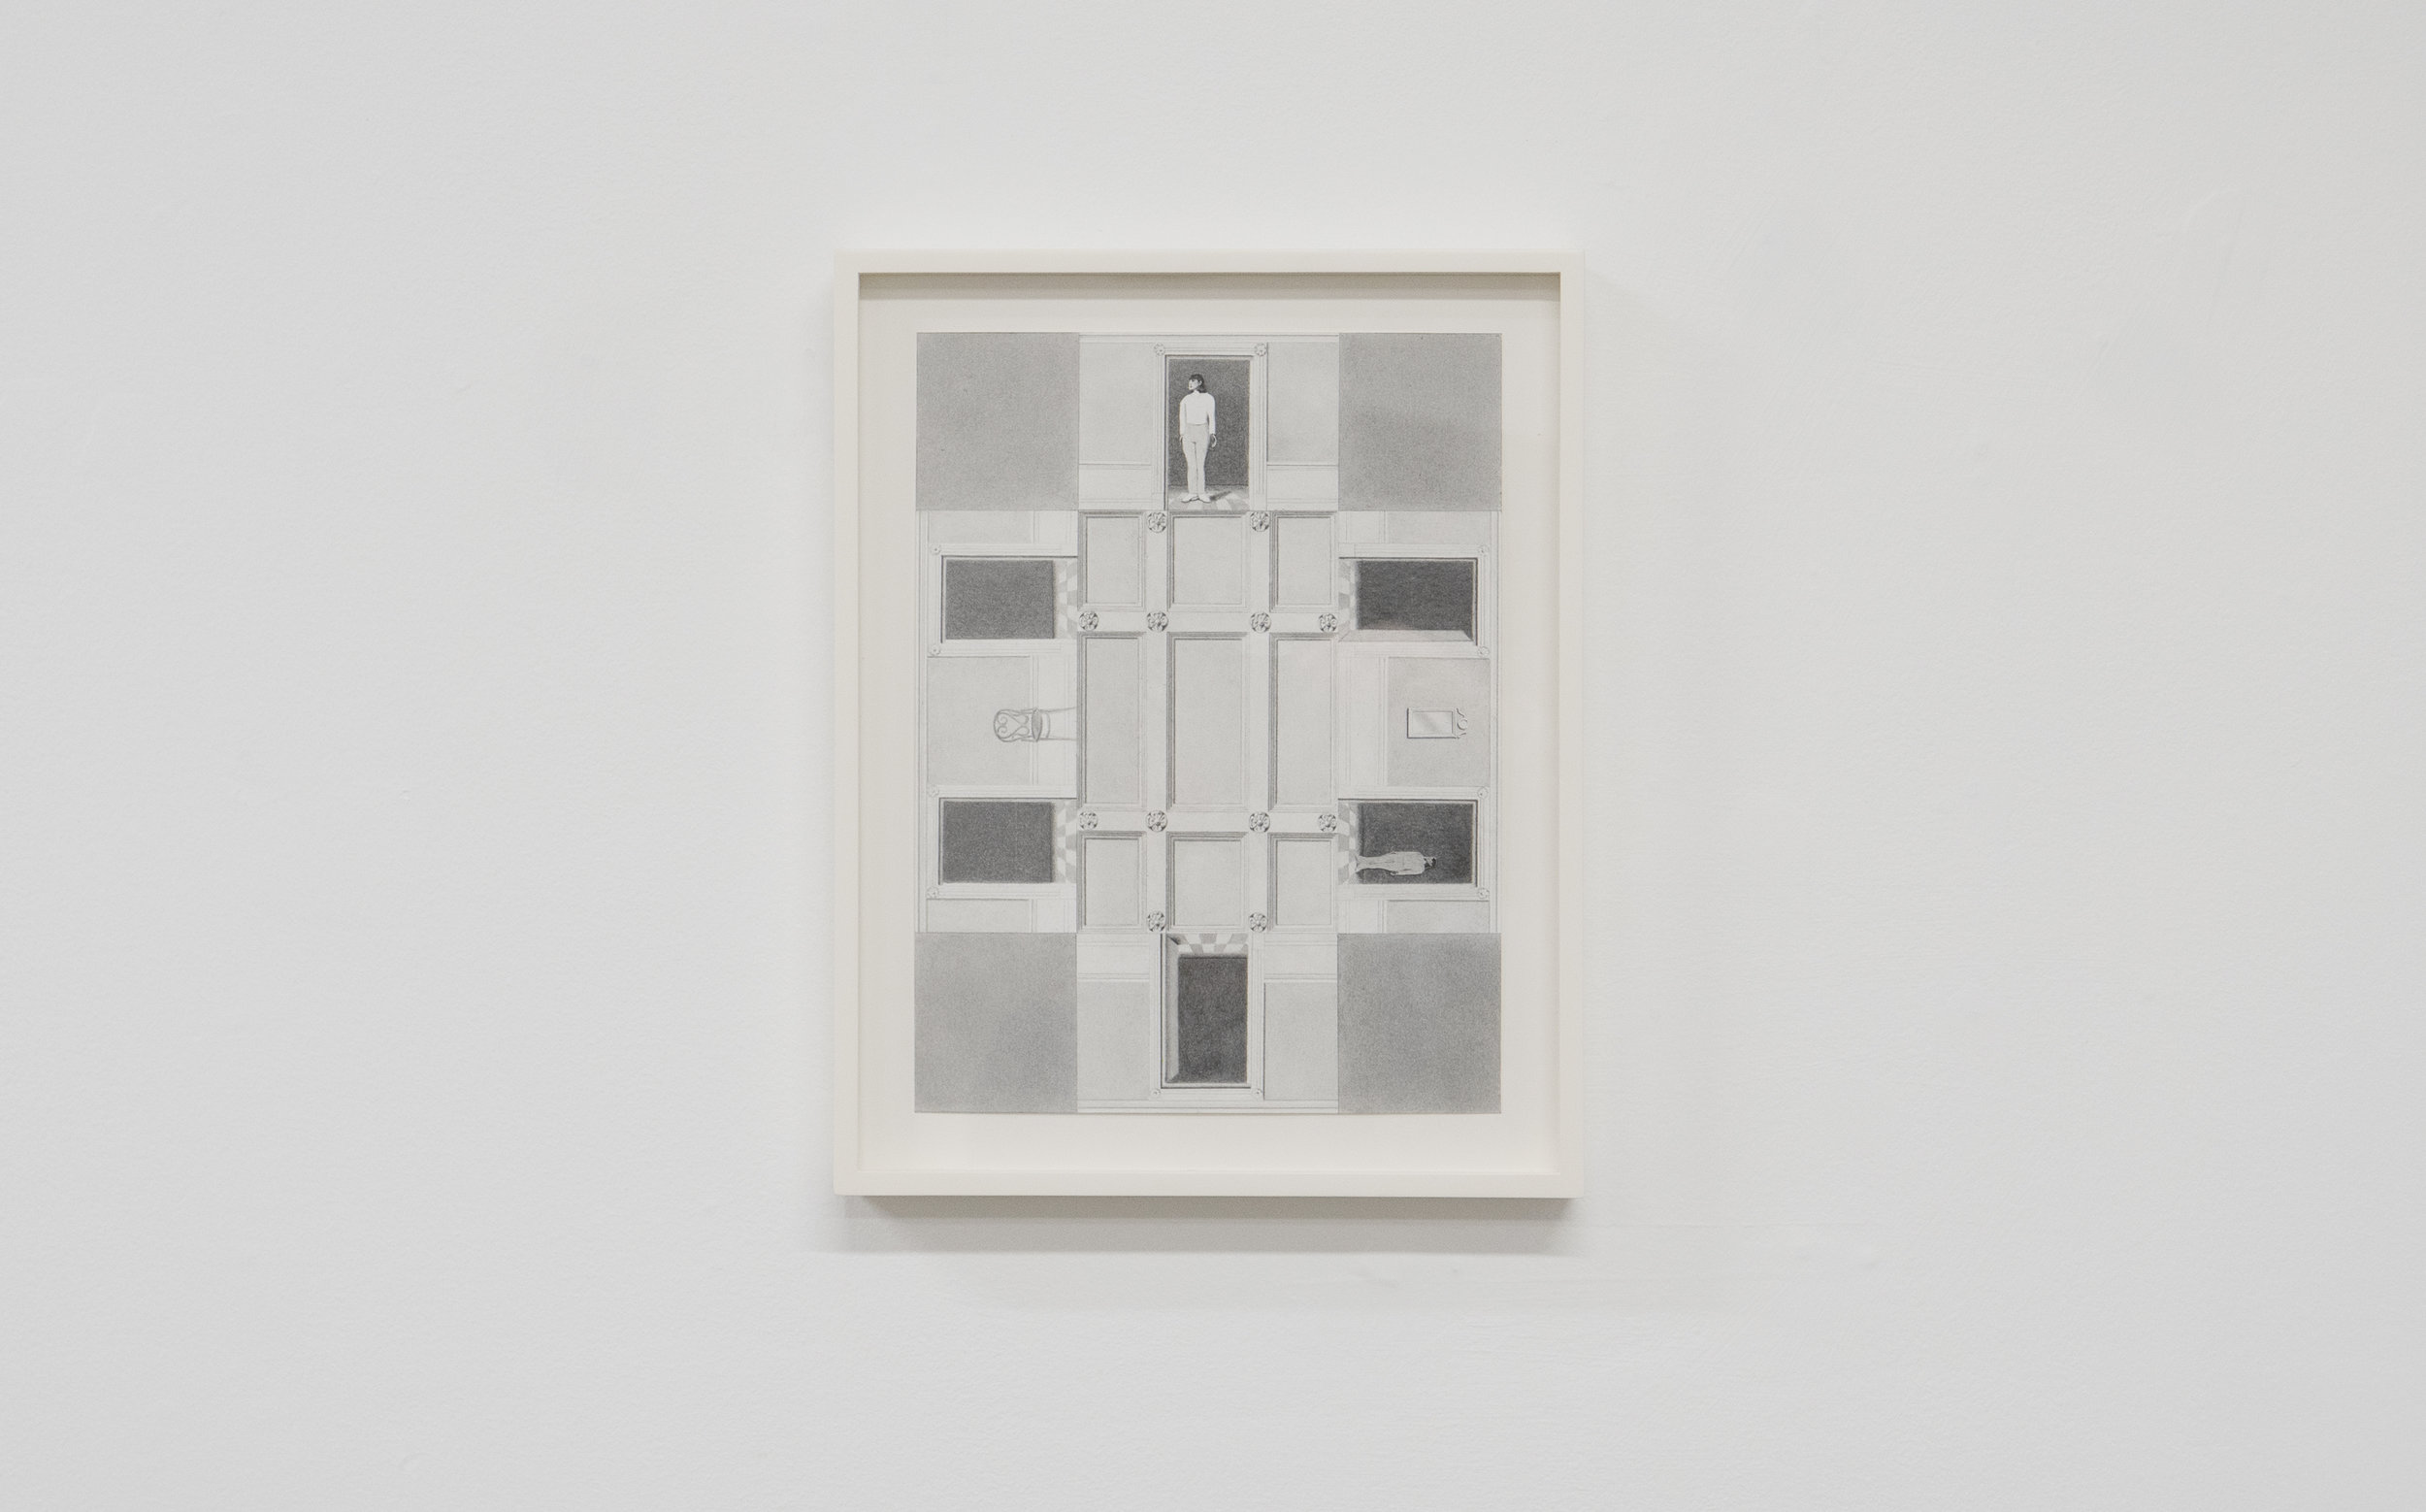 Milano Chow Ceiling Plan with Walls (Checkerboard) 2018 Graphite, ink, Flashe, and photo transfer on paper 12 × 9 in